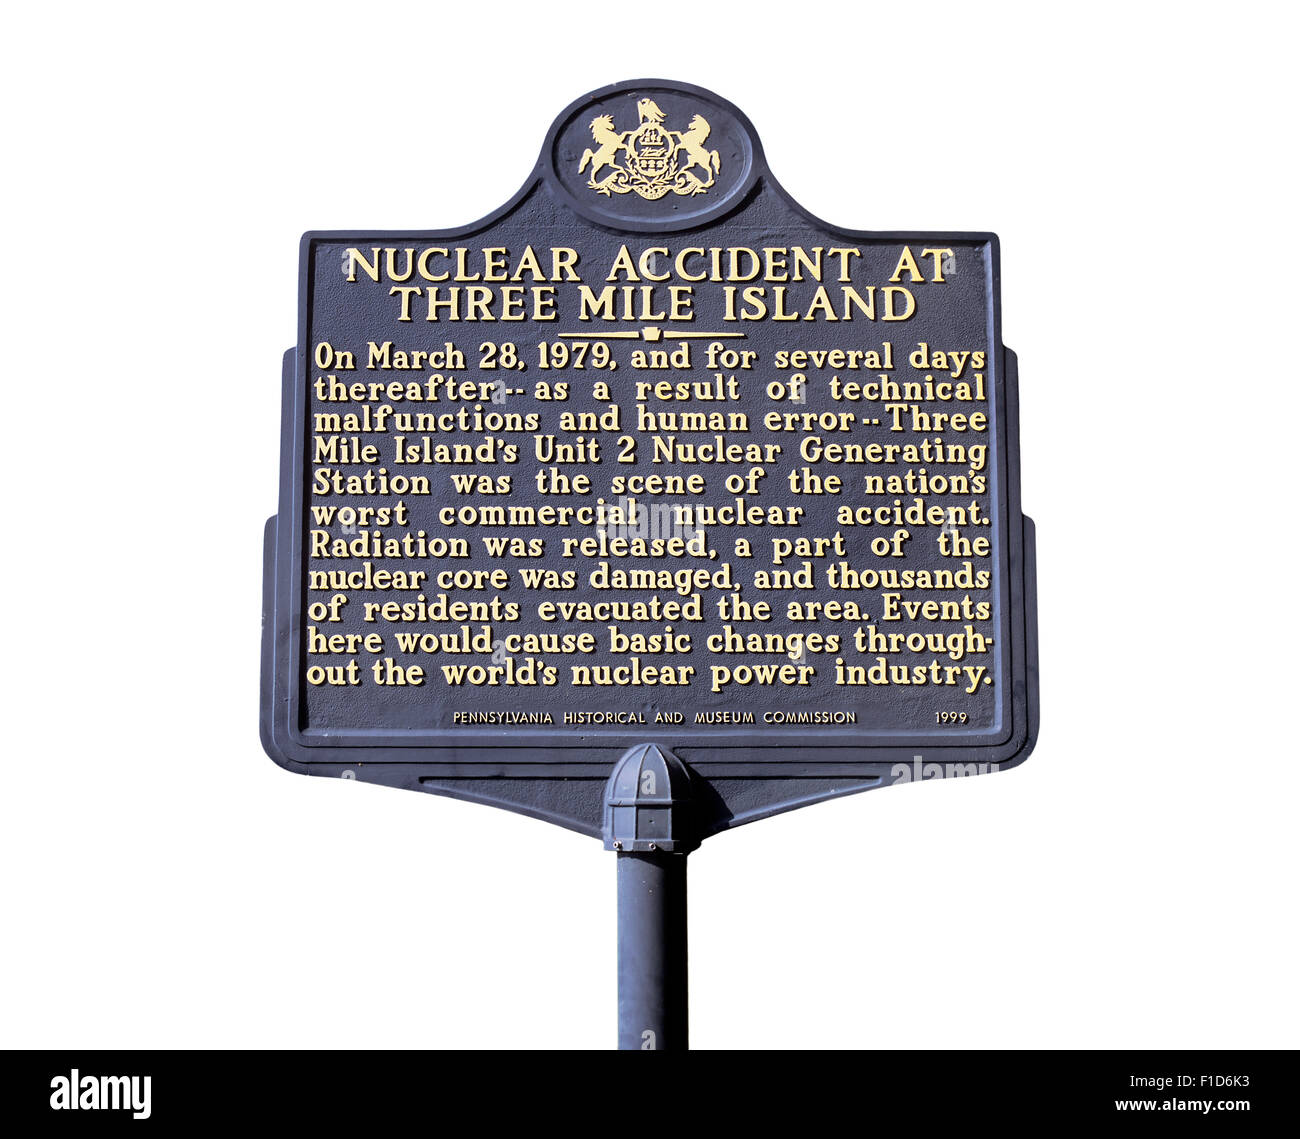 Sign near Three Mile Island nuclear power station, Pennsylvania, USA, commemorating the 1979 nuclear accident. - Stock Image